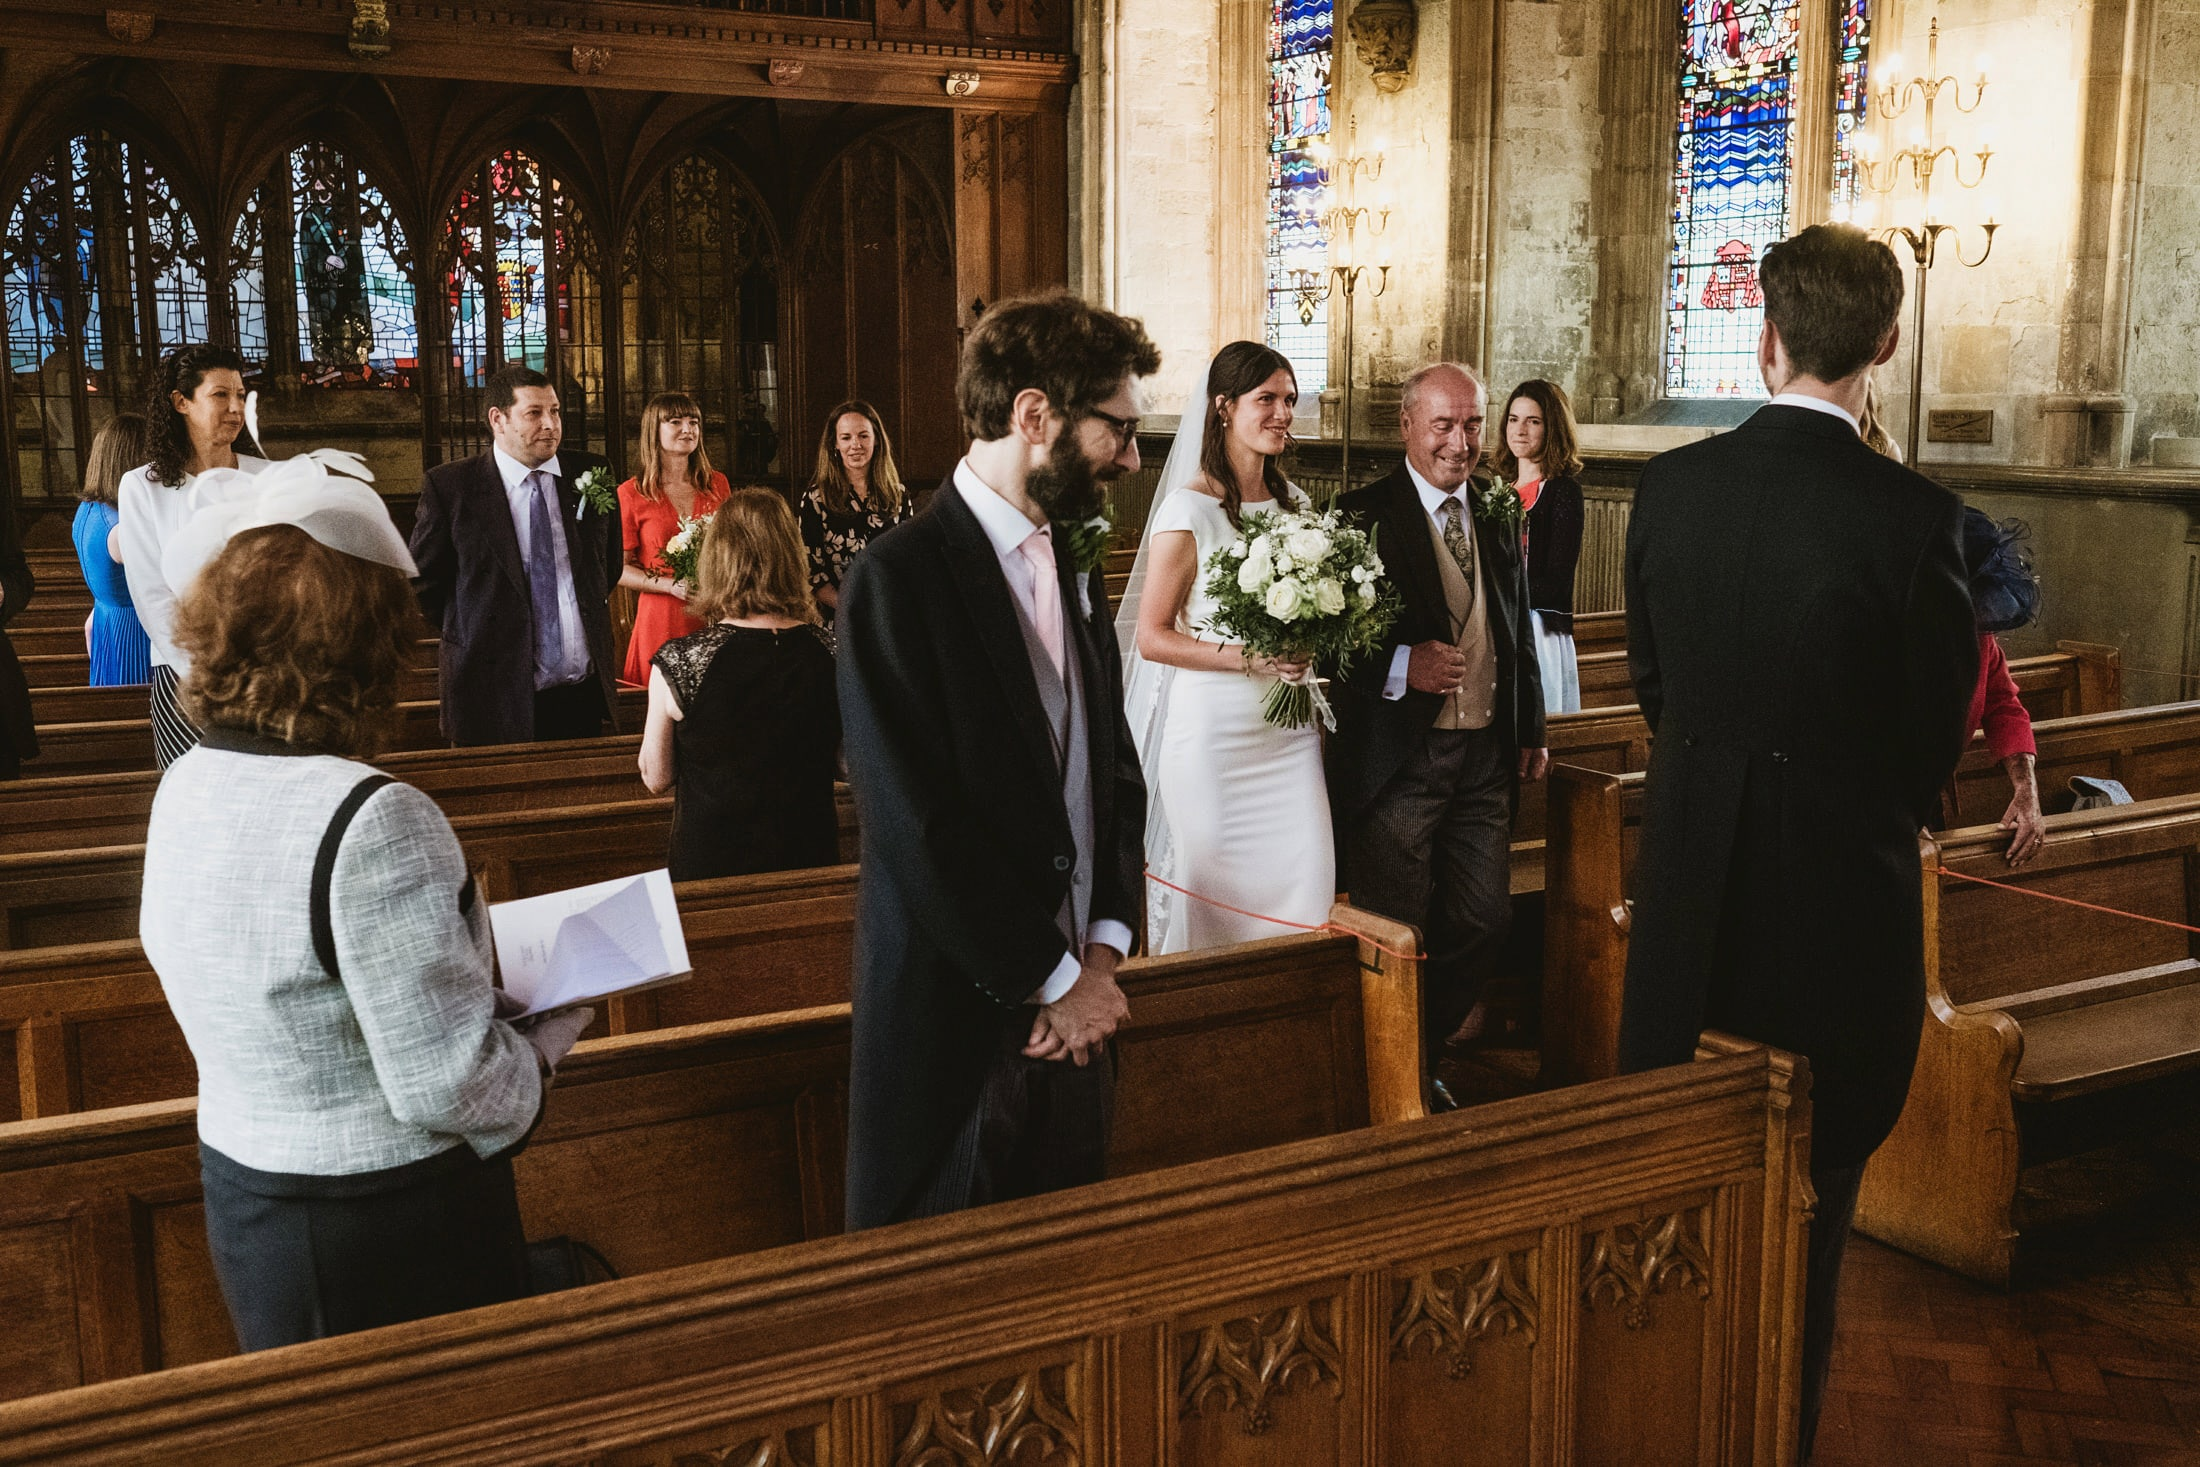 Guests (socially distanced) stand as the bride and her father make their entrance and approach the waiting groom. Wedding photograph from a micro wedding in London.